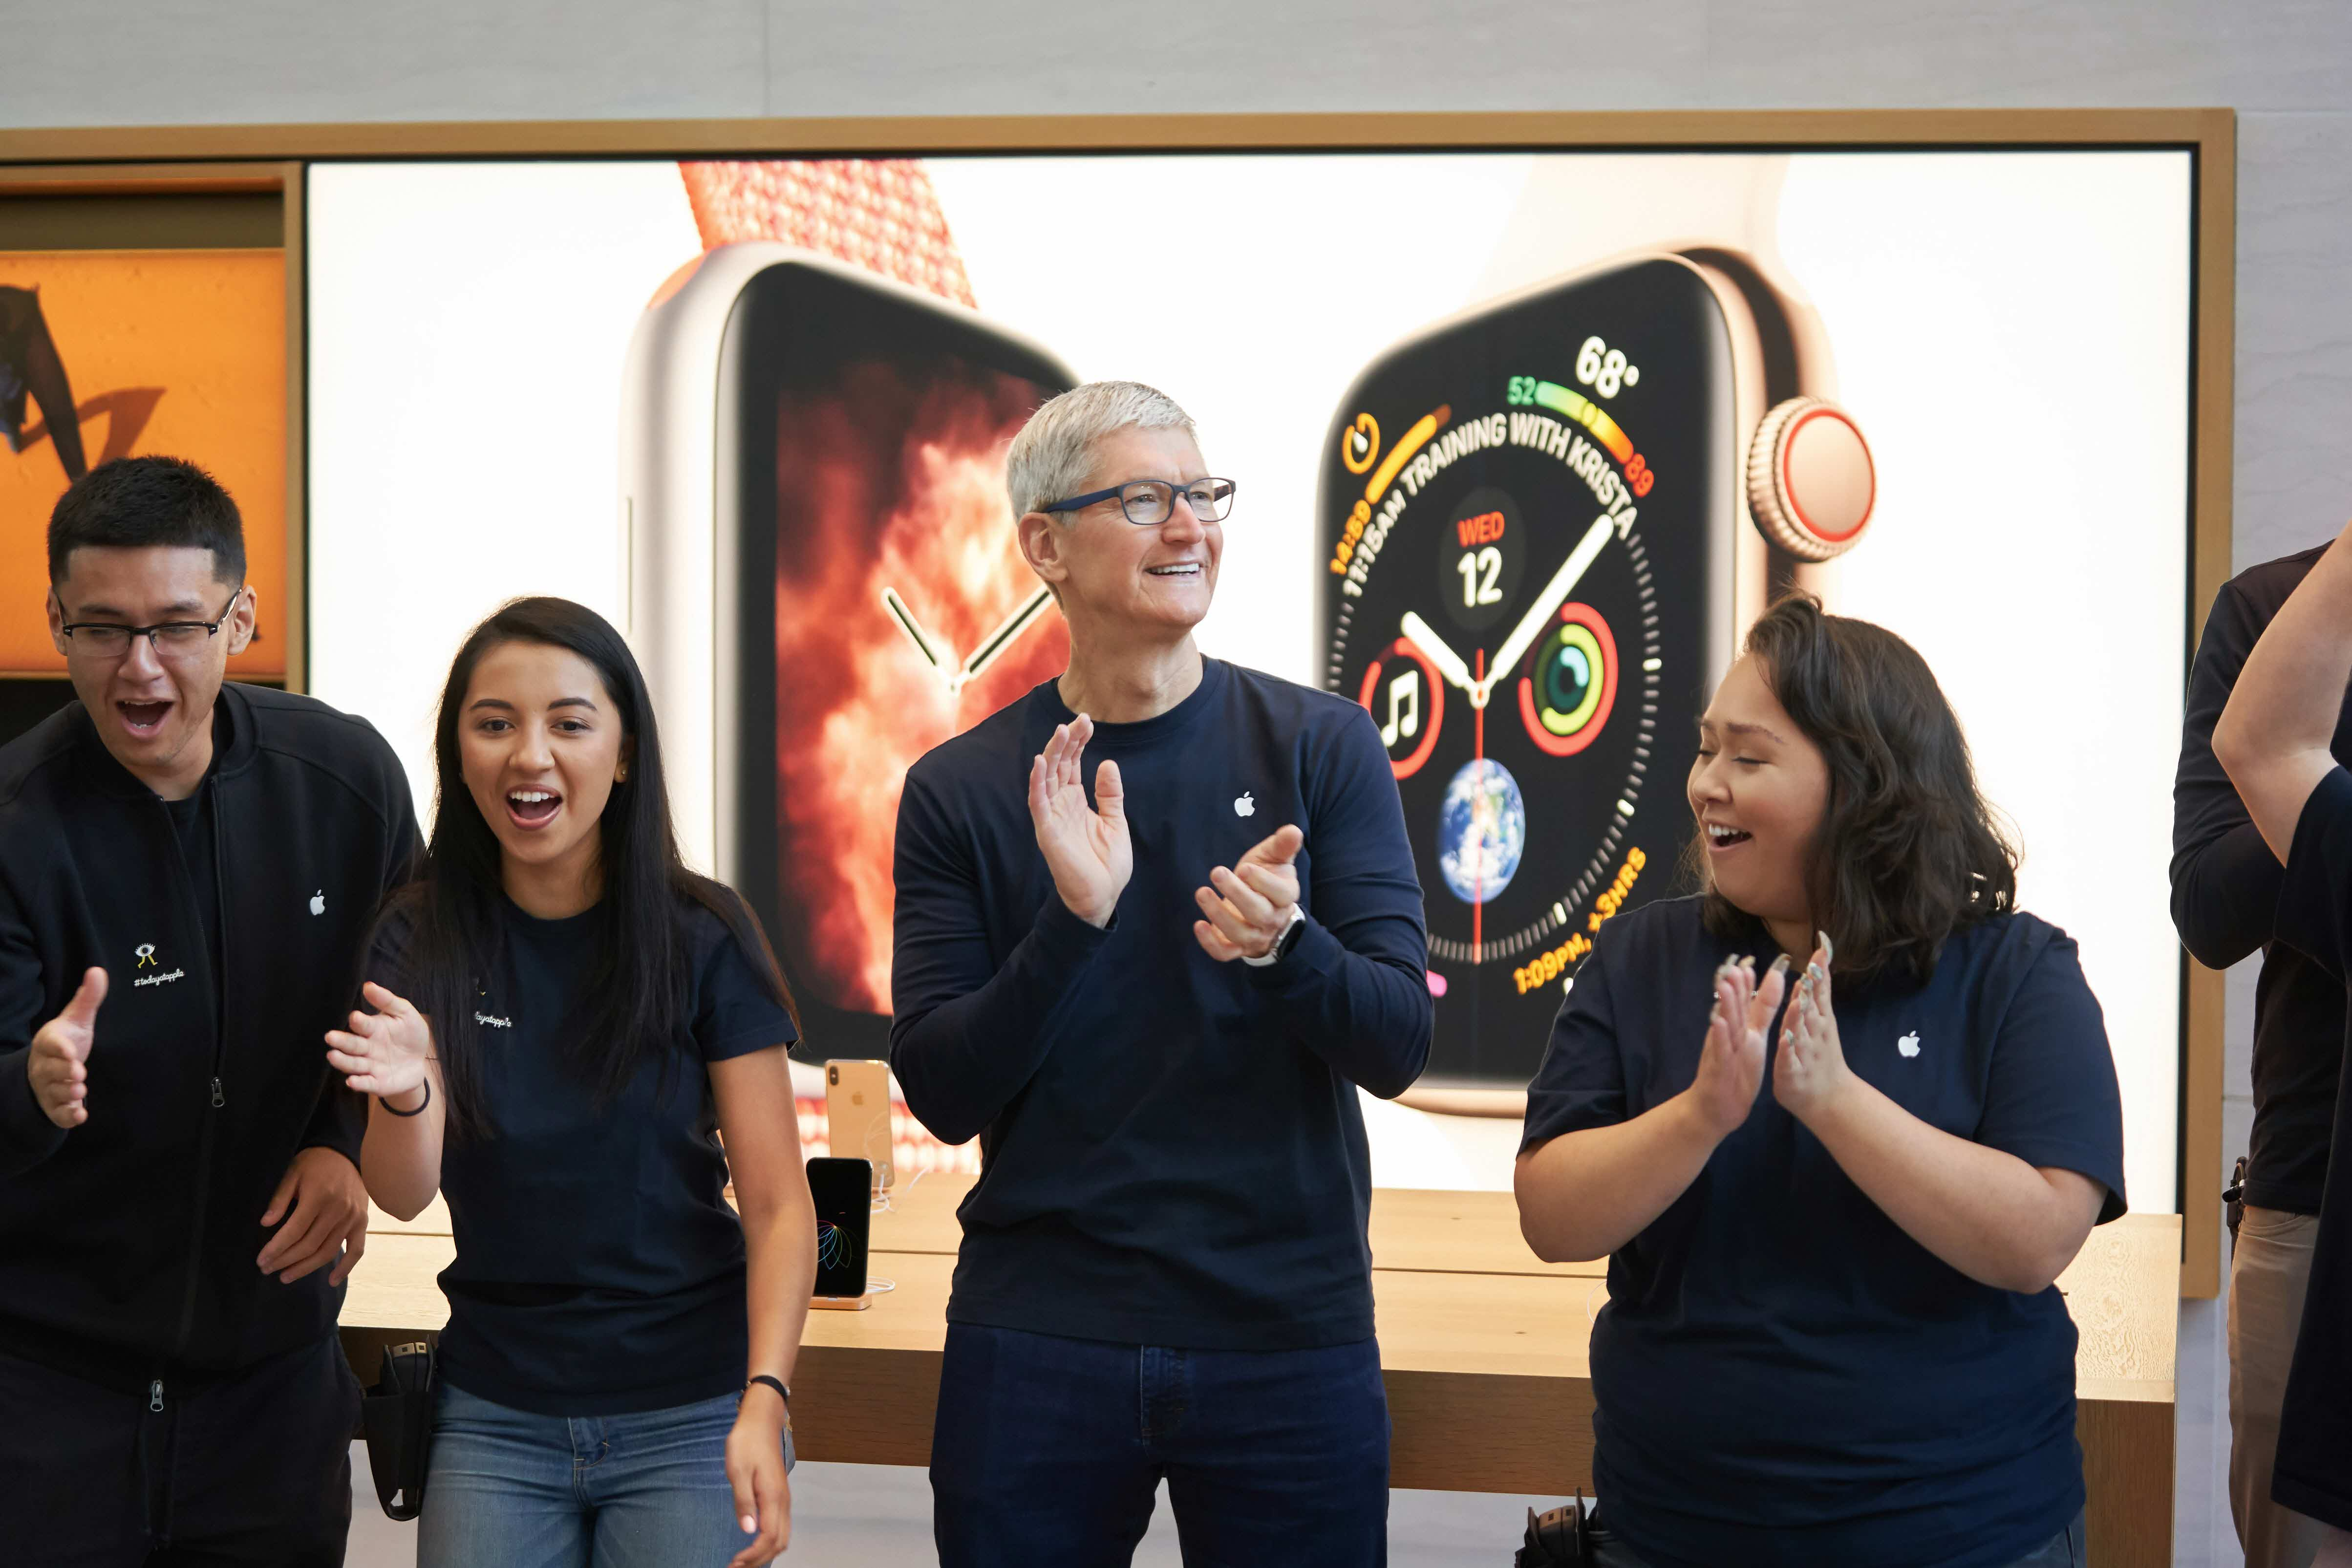 Iphone Xs Apple Watch Series 4 Palo Alto Tim Cook Apple Store 09202018